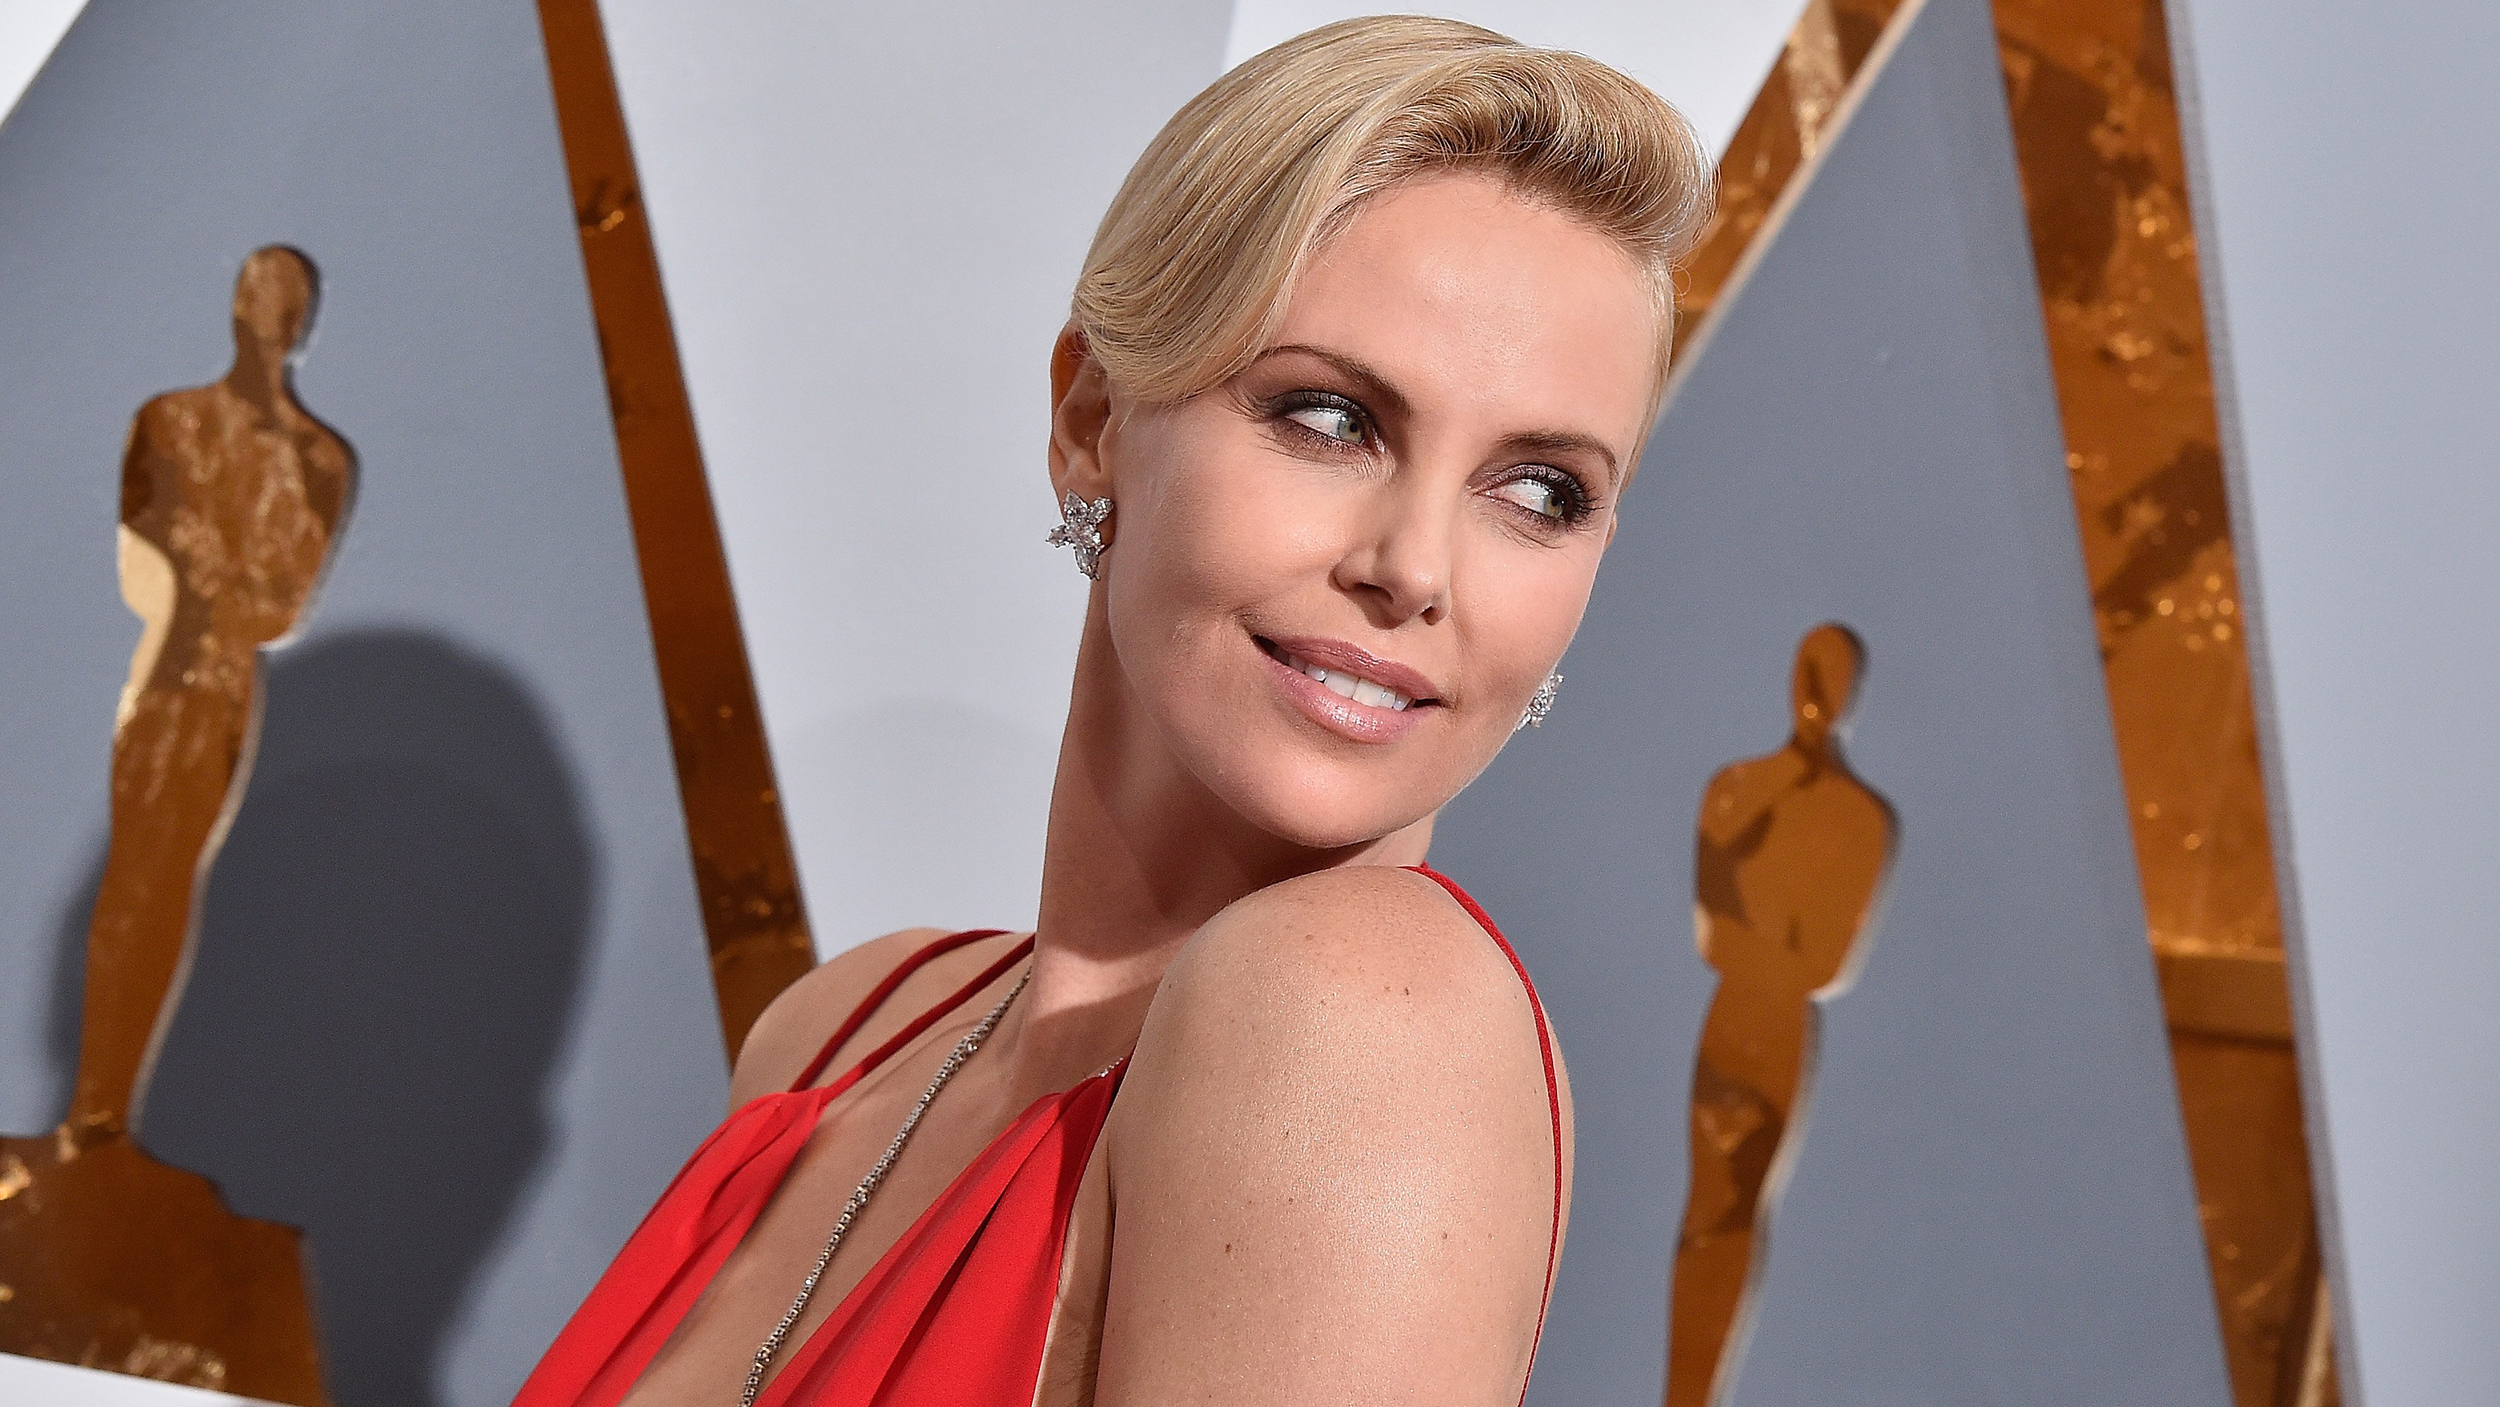 charlize theron dating Are seth macfarlane and charlize theron dating they're playing coy, but the two have been spotted out and about lately enjoying dinner and spending time together in beverly hills, getting the.